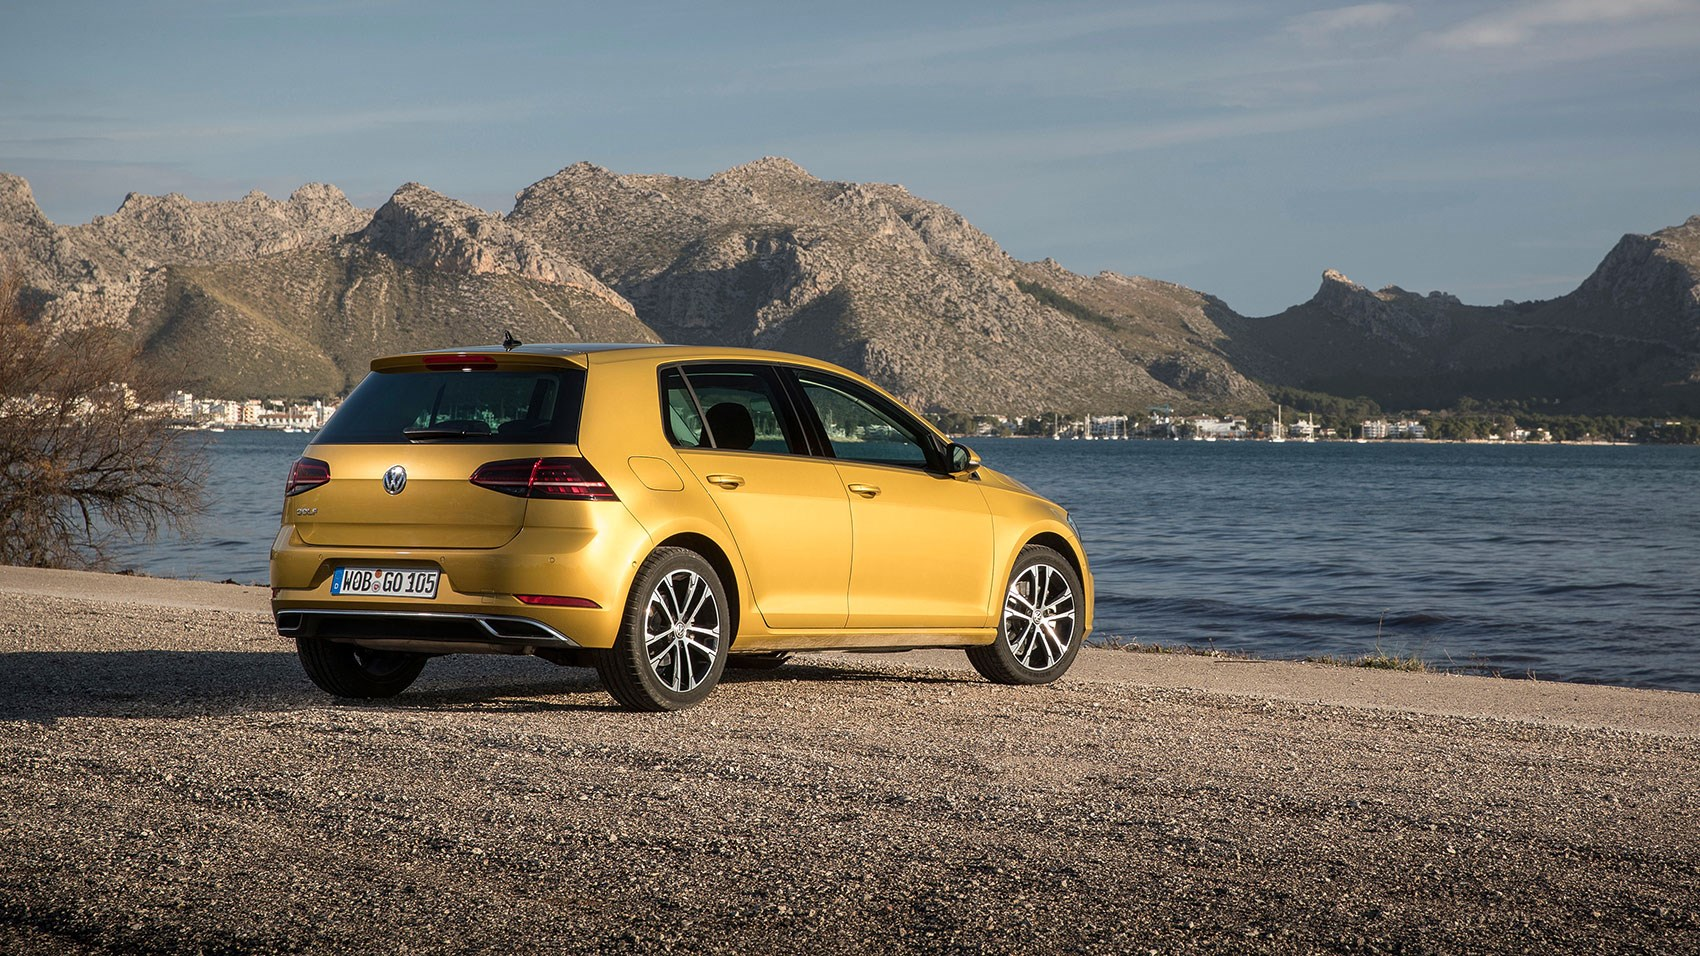 VW Golf 1 5 TSI Evo 150 DSG 2017 review